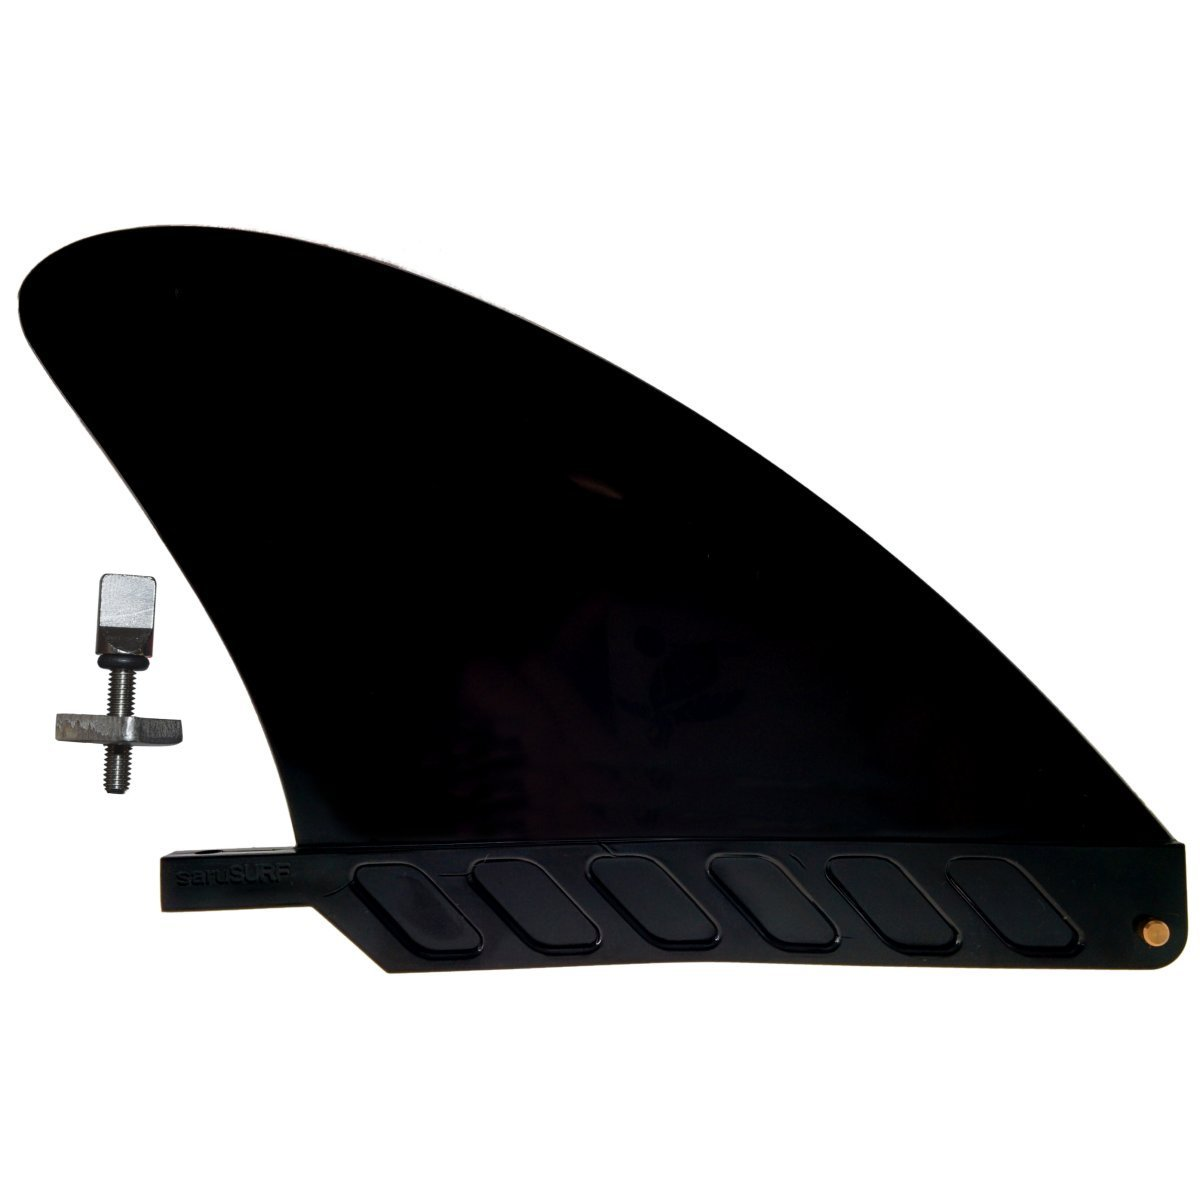 saruSURF US box center stubby fin hard 4.6'' for River SUP/longboard/airSUP Black